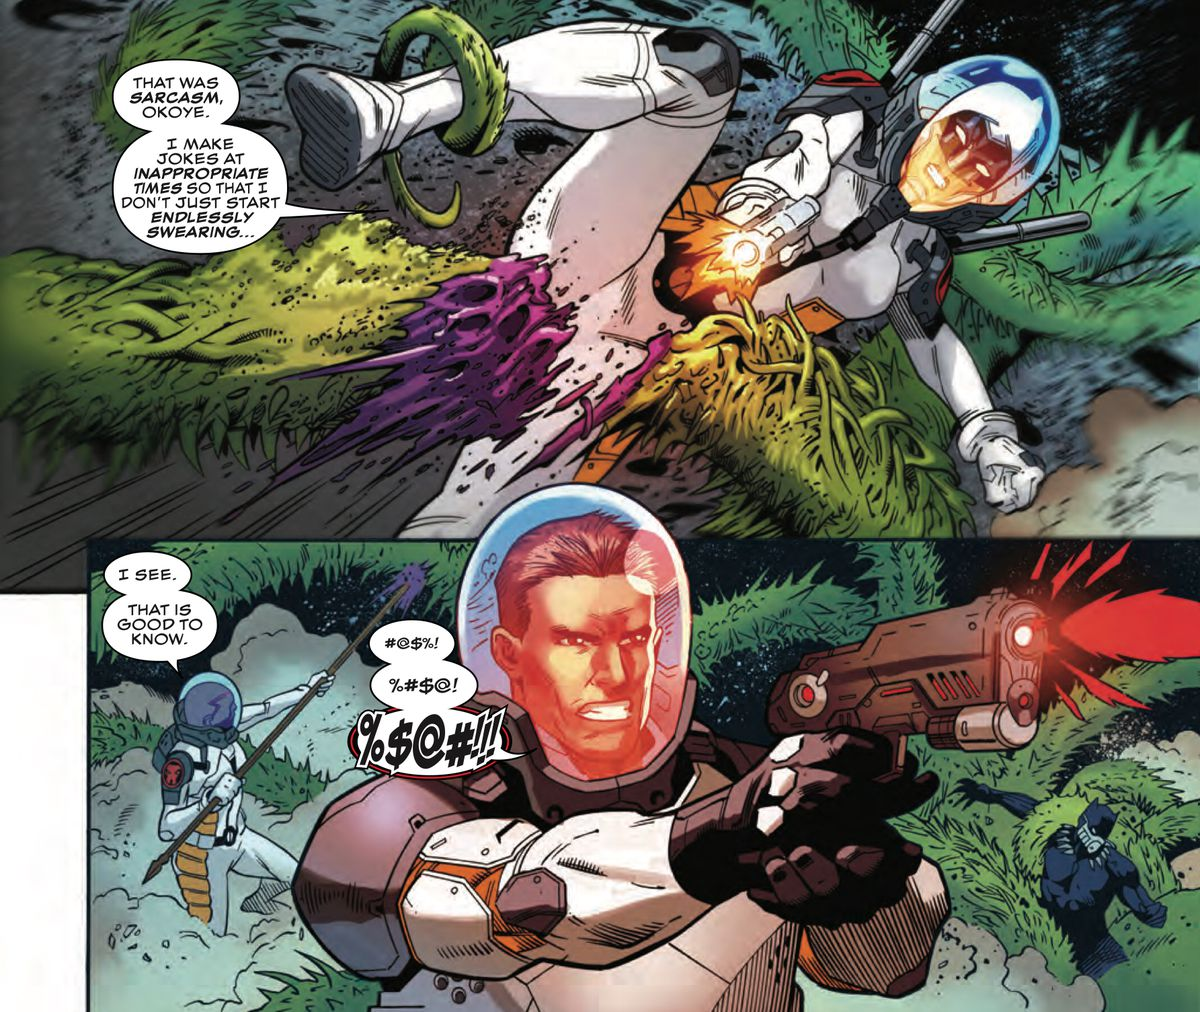 Mid-fight, Mockingbird explains to Okoye that she makes jokes during combat to keep from endlessly swearing, as John Jameson, swears repeatedly behind them, in Black Panther and the Agents of Wakanda #3, Marvel Comics (2019).